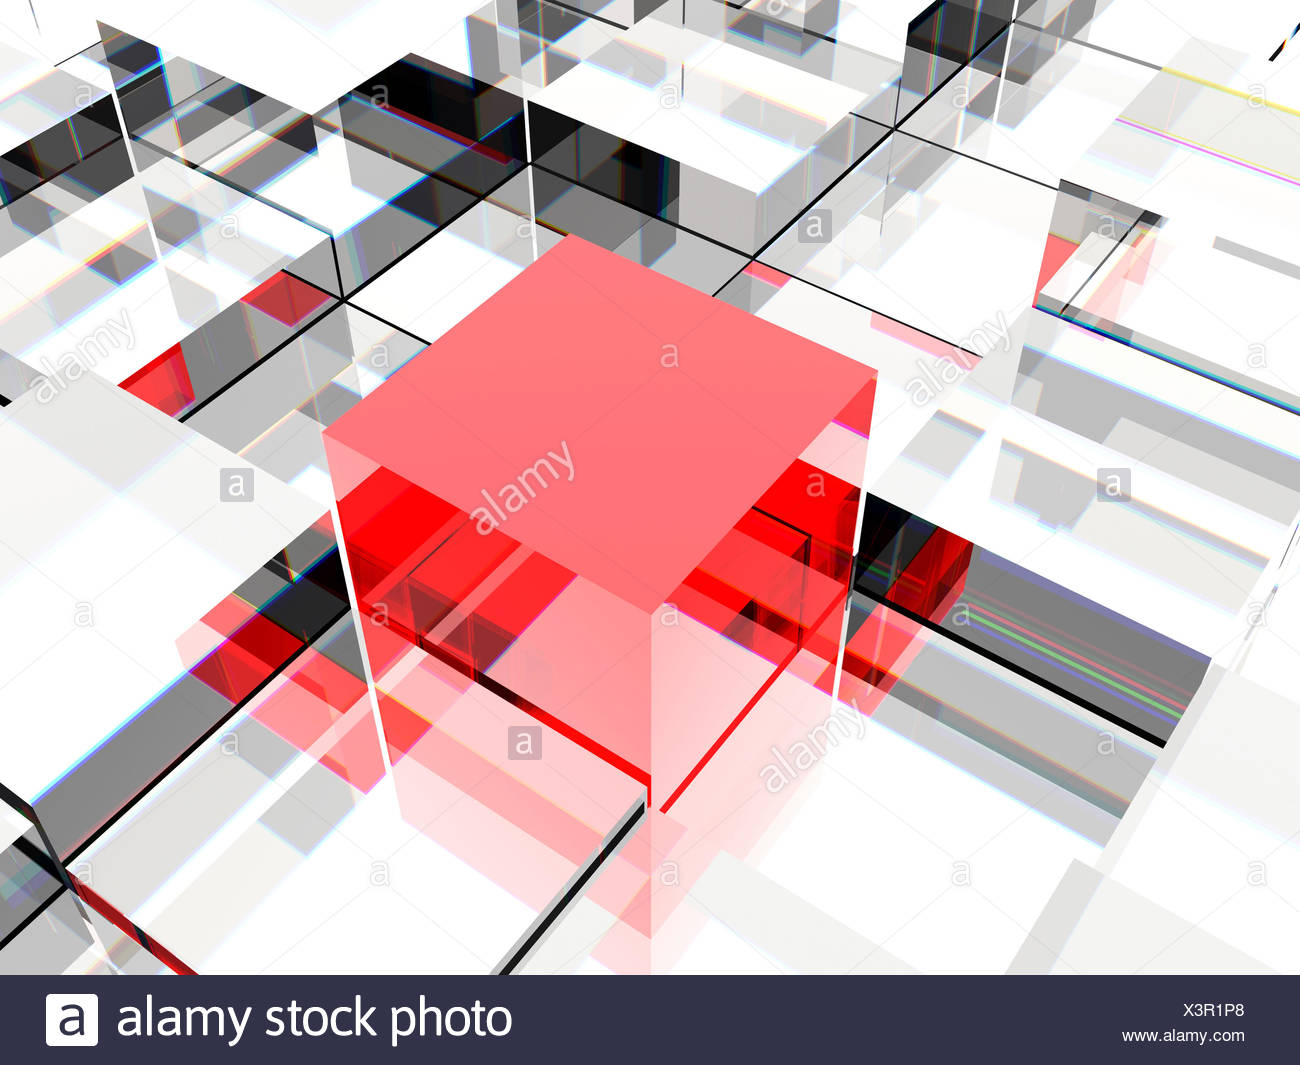 innovation difference cube - Stock Image